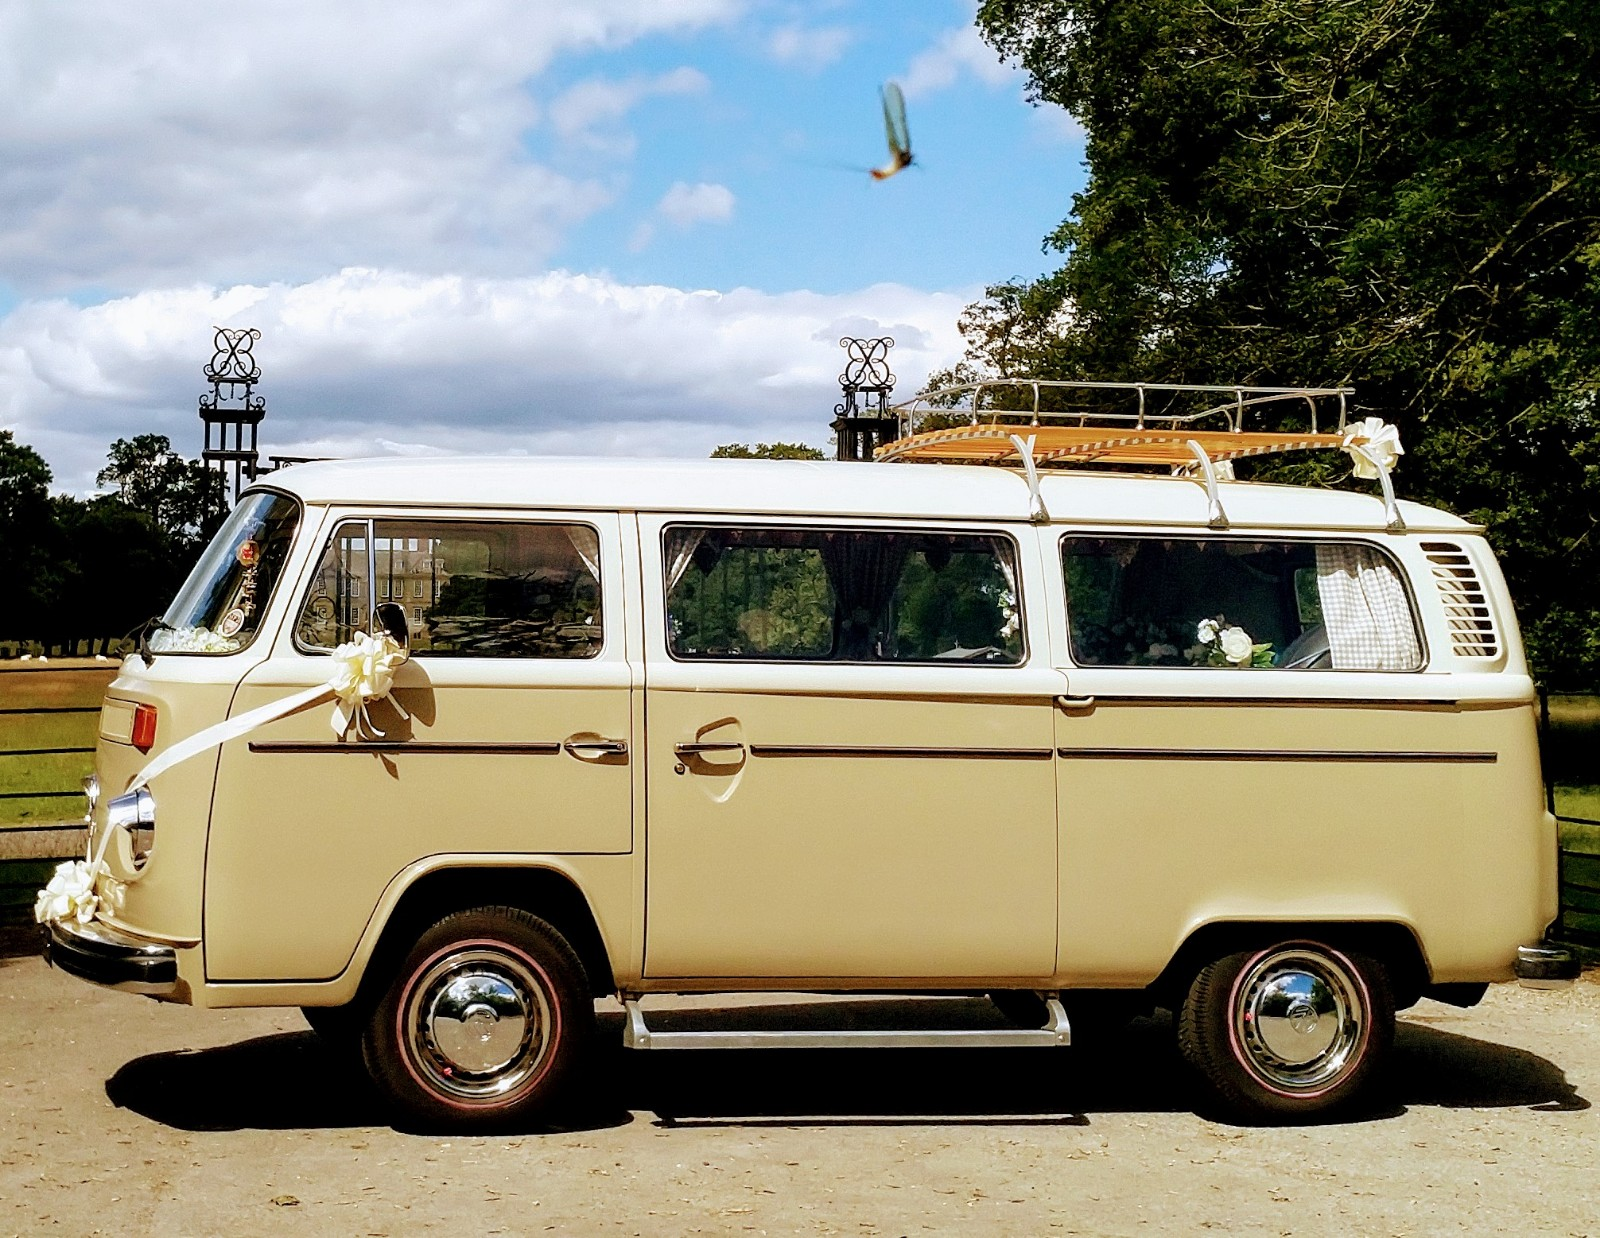 Barney 1974 VW Bay Window Deluxe